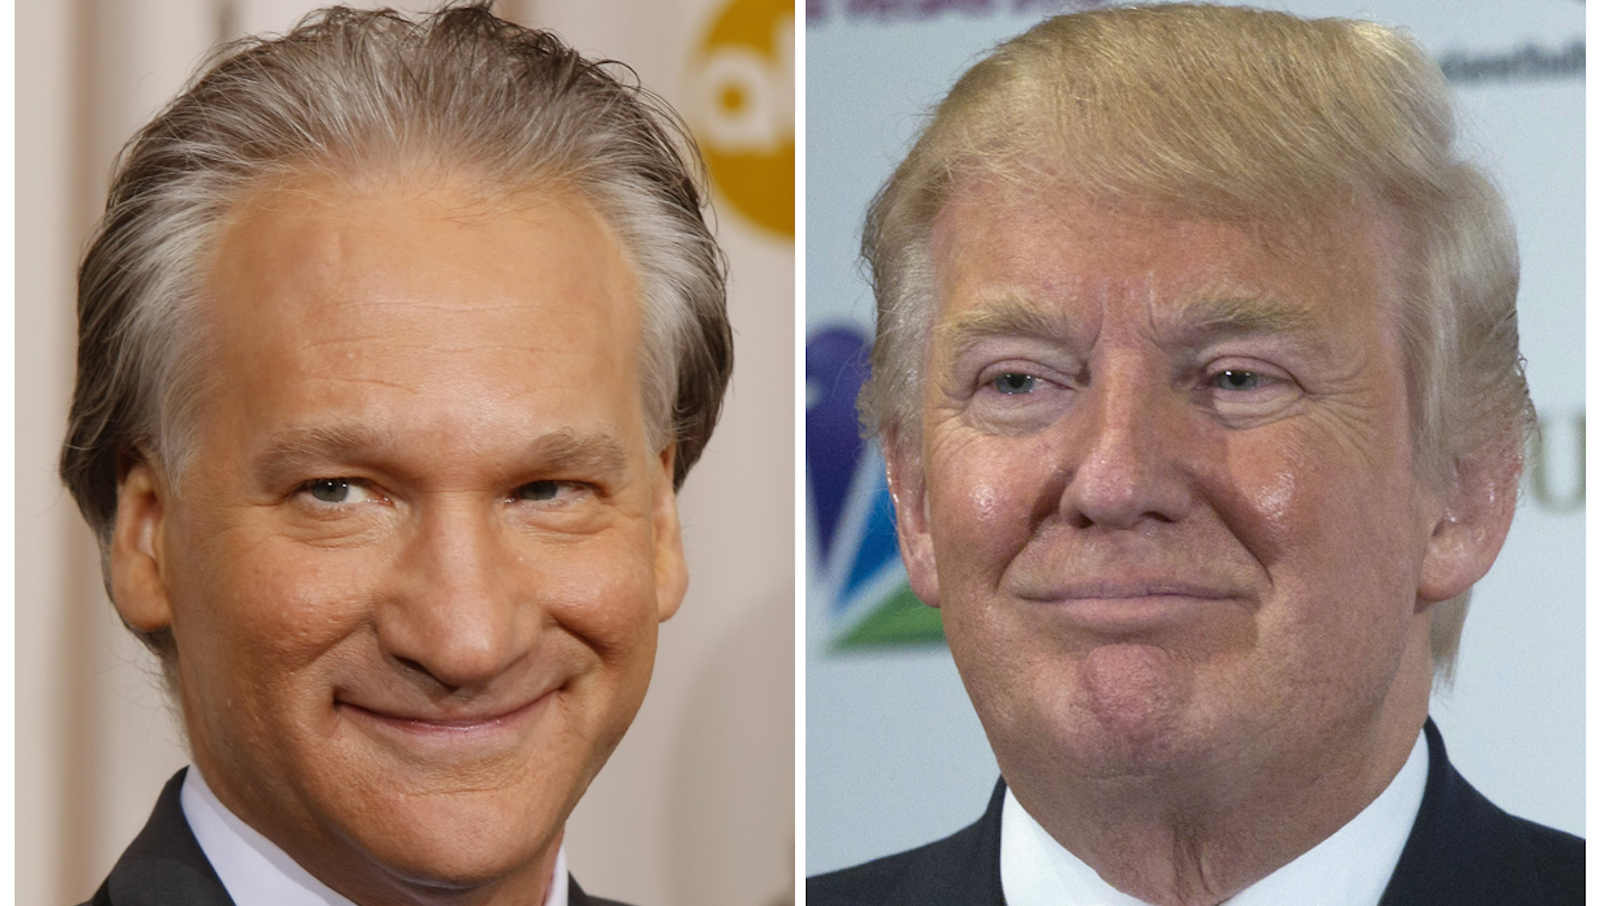 This combination photo shows Bill Maher in Hollywood, California, February 22, 2009 and Donald Trump in Las Vegas, Nevada, December 19, 2012. Trump, the famously outspoken real estate magnate has sued famously outspoken television host Bill Maher, demanding the $5 million Maher offered to give to charity if Trump could prove his father is not an orangutan. But legal experts say Trump is unlikely to get a dime from Maher, the host of the HBO series Real Time With Bill Maher, because his offer was clearly made in jest.  REUTERS/Mike Blake/Steve Marcus/Files